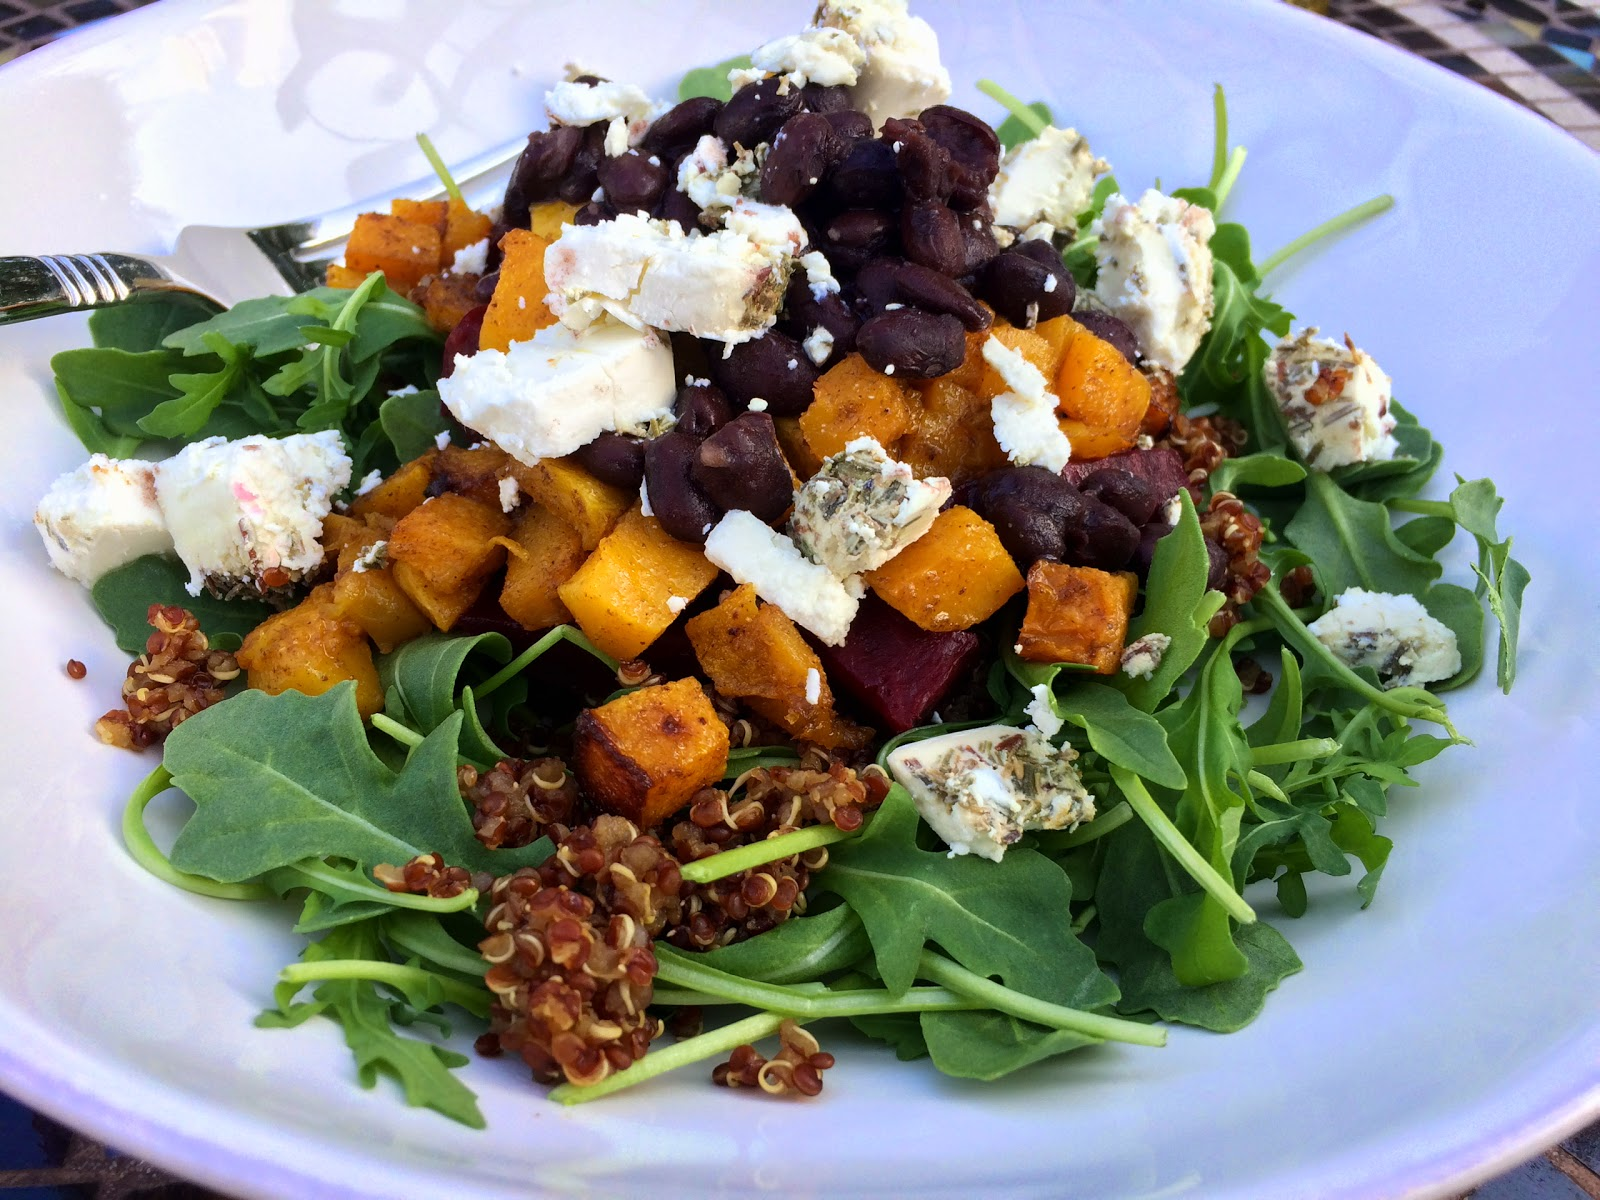 Arugula Salad with Beets, Black Beans, and Butternut Squash from Food Therapy